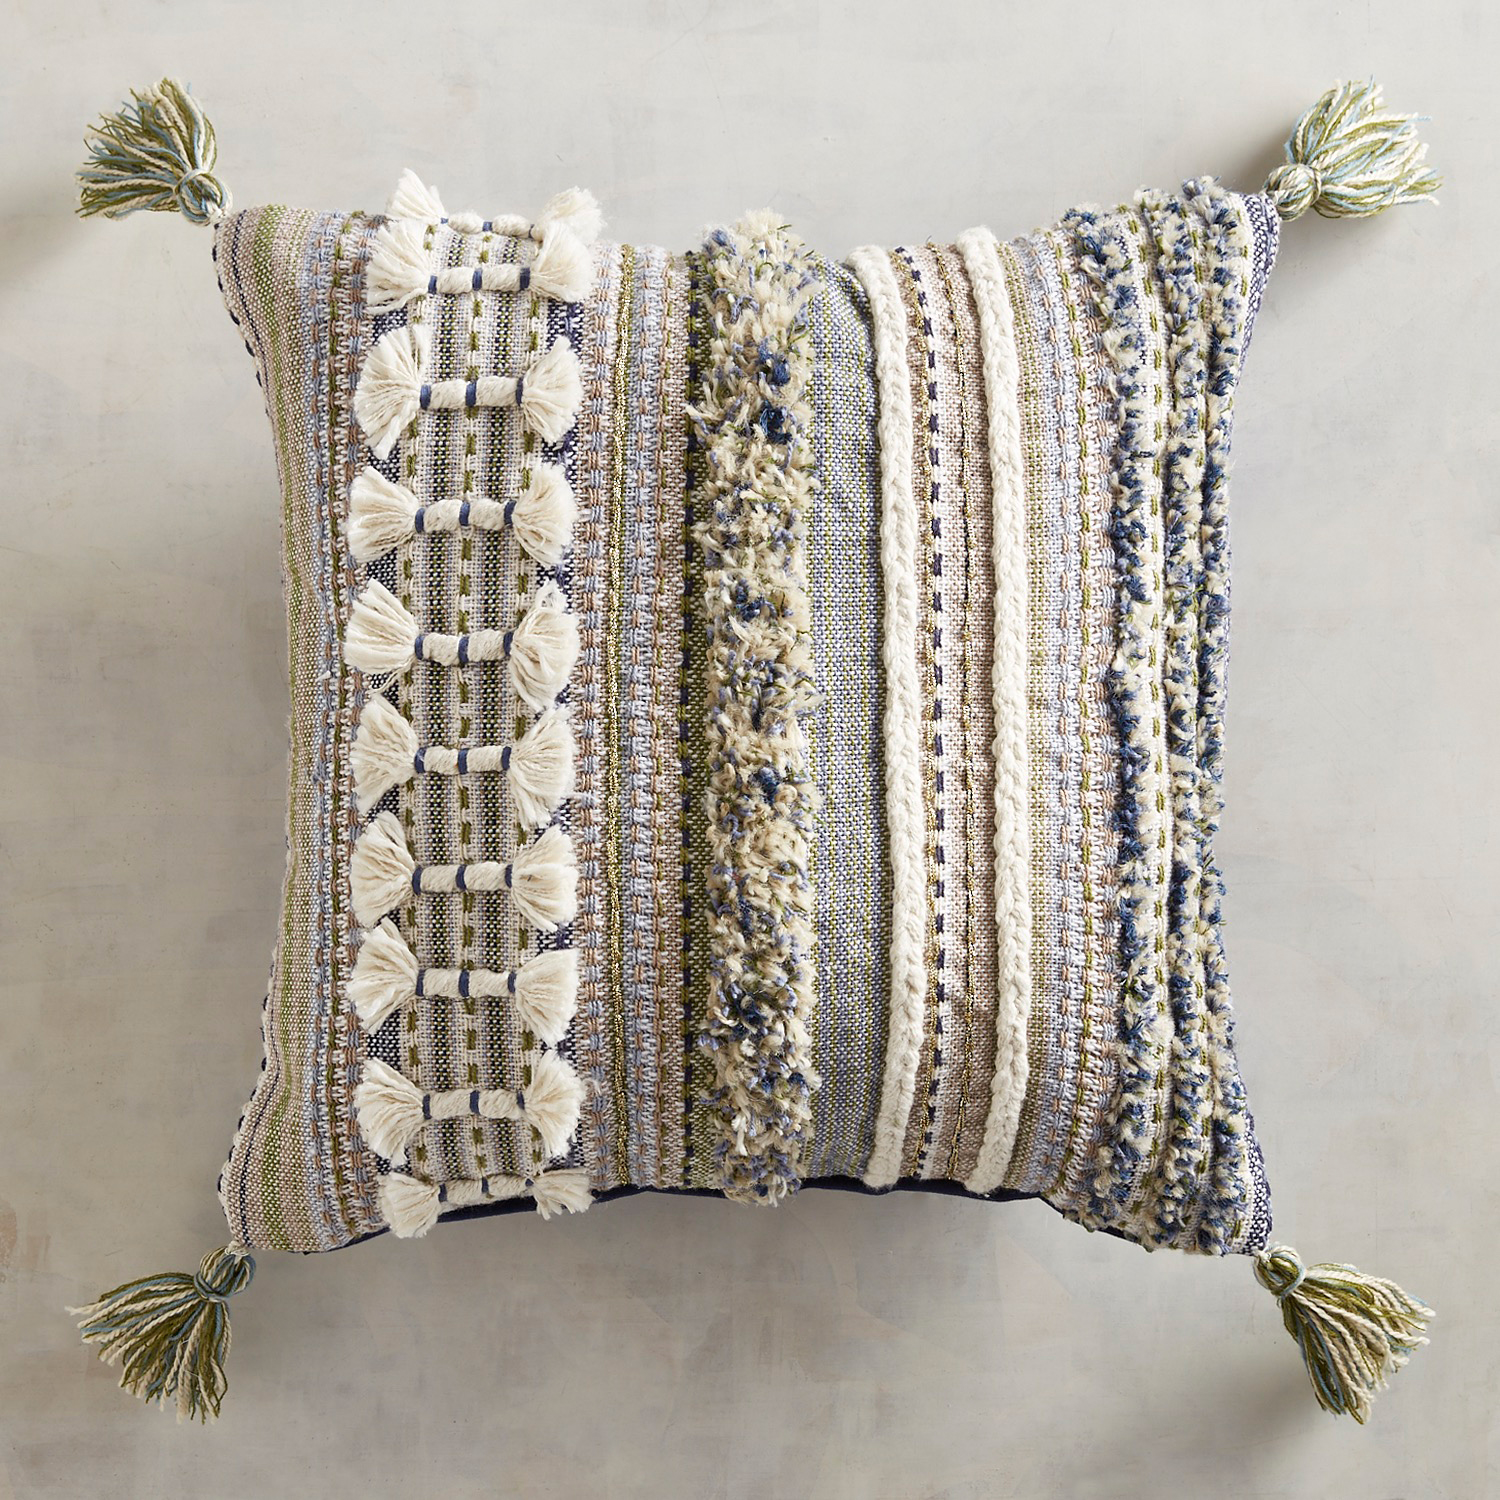 Chunky Textured Blues Pillow with Tassels